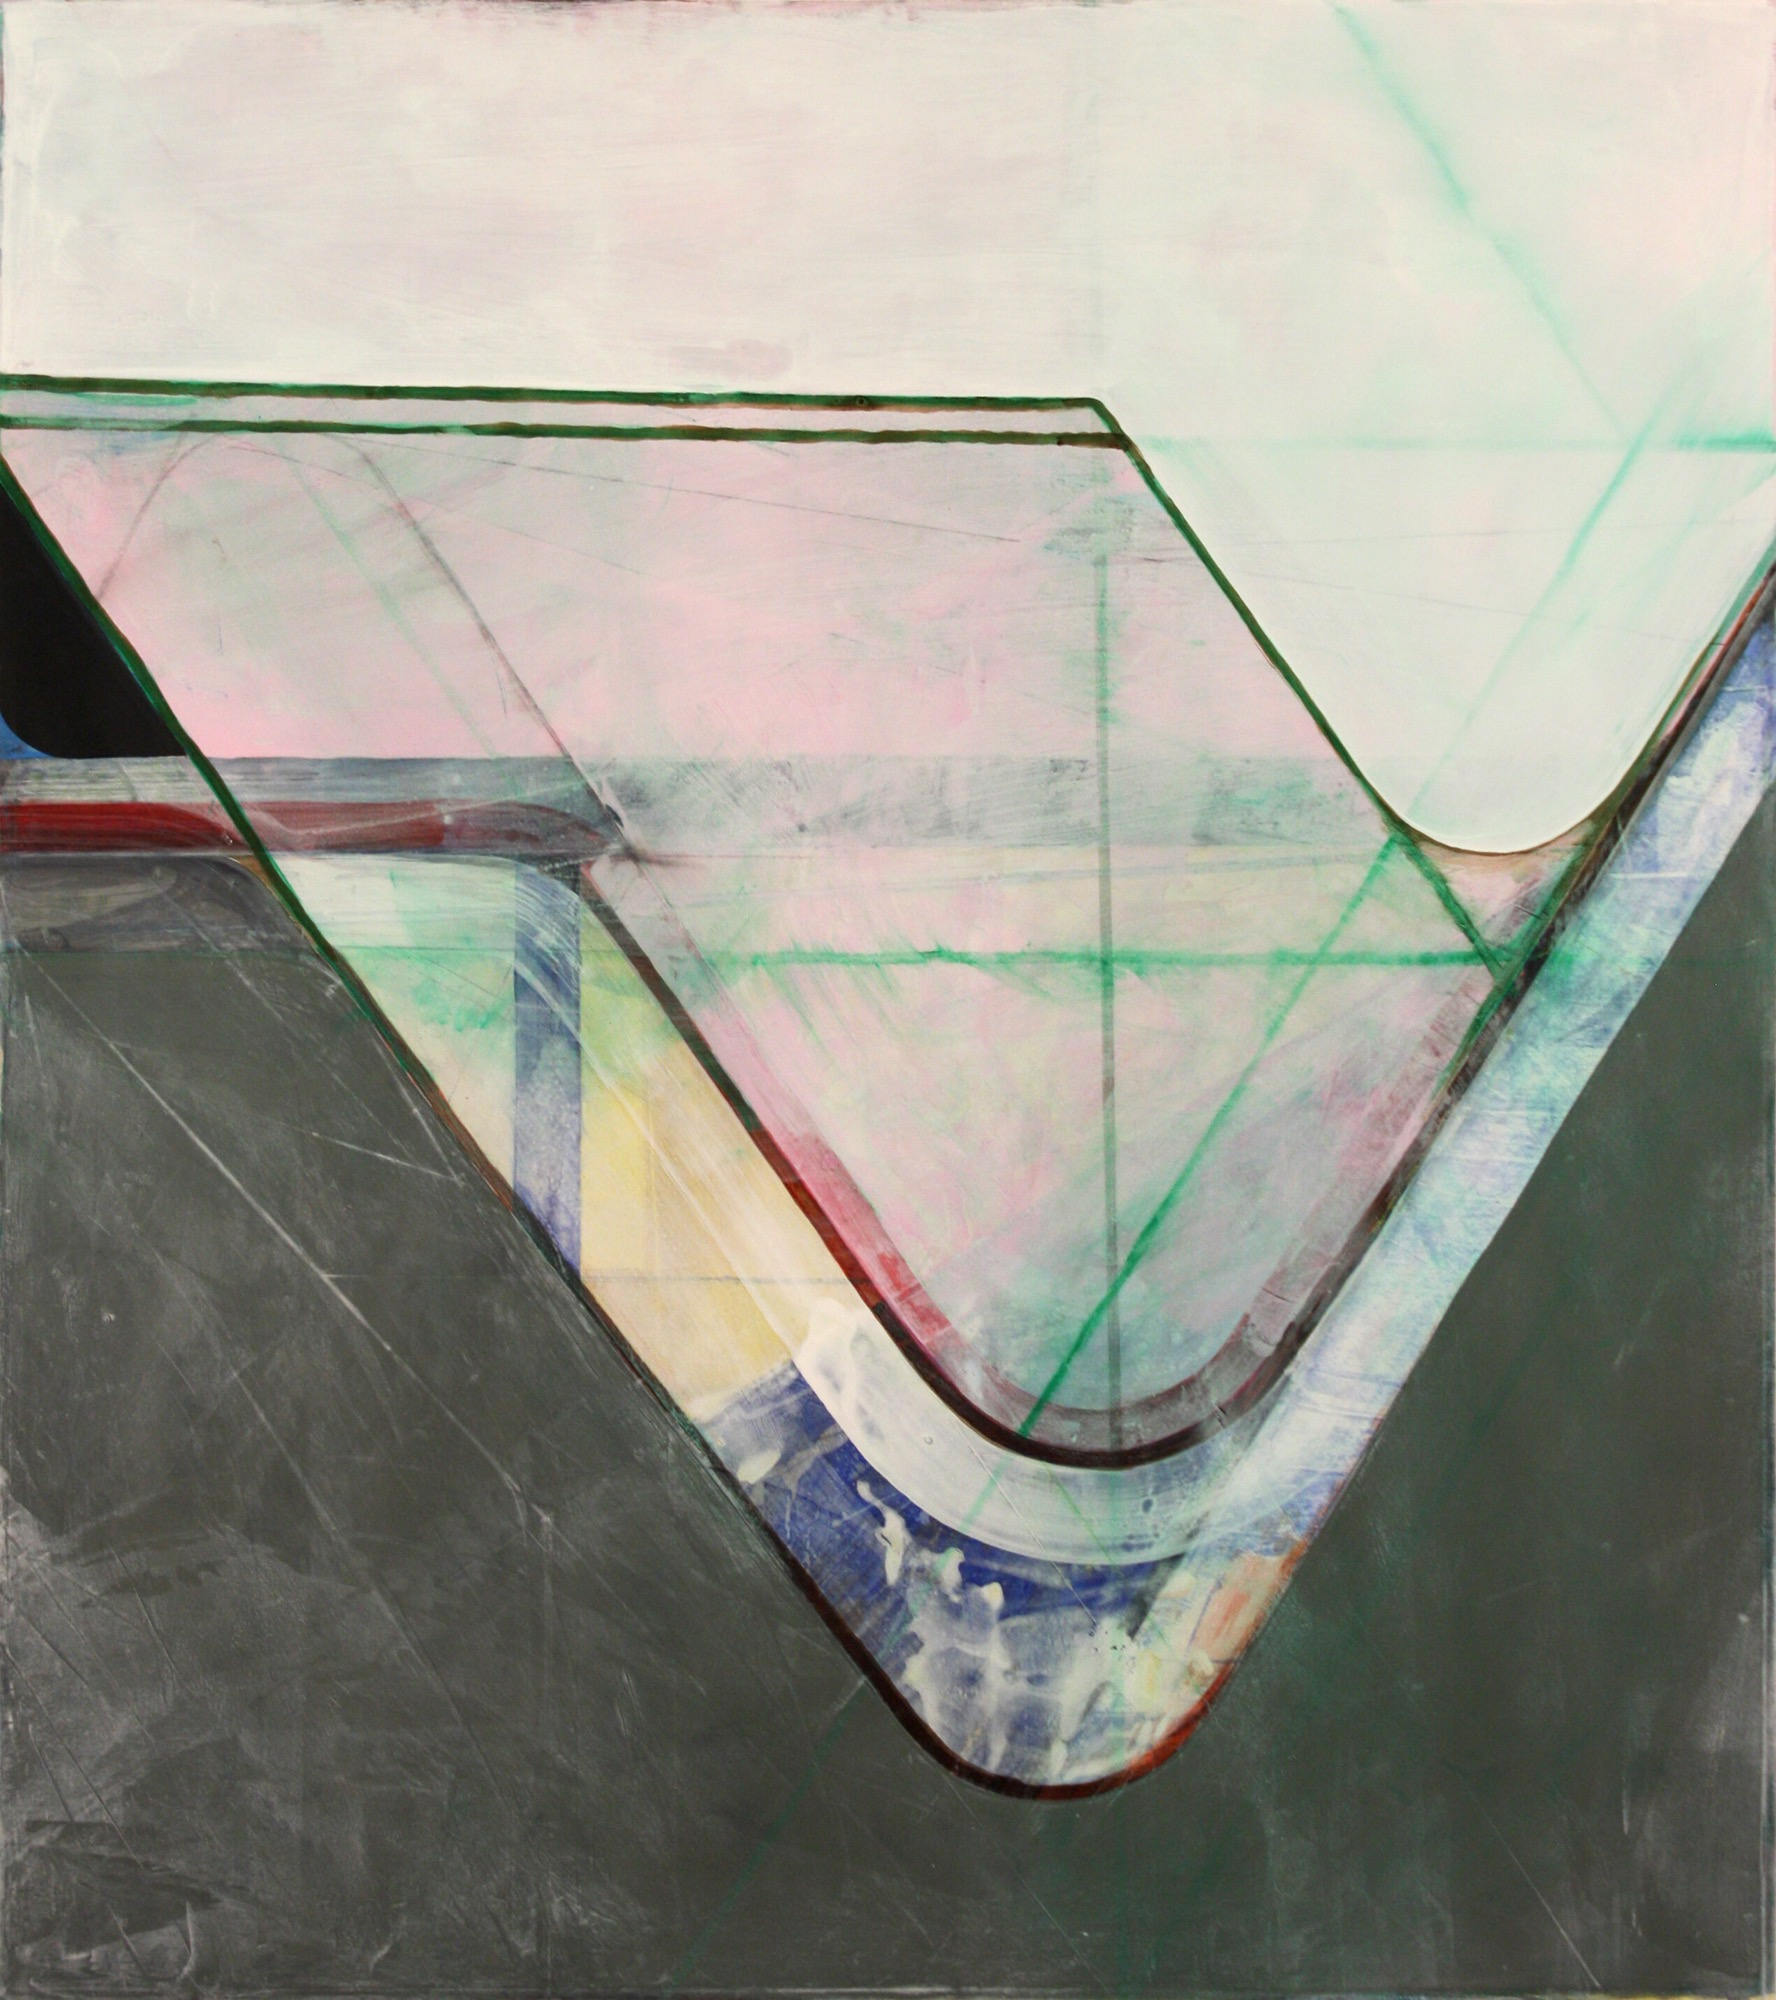 Nick Lamia, Cross-section,  2017, acrylic on paper, 50 x 45 inches